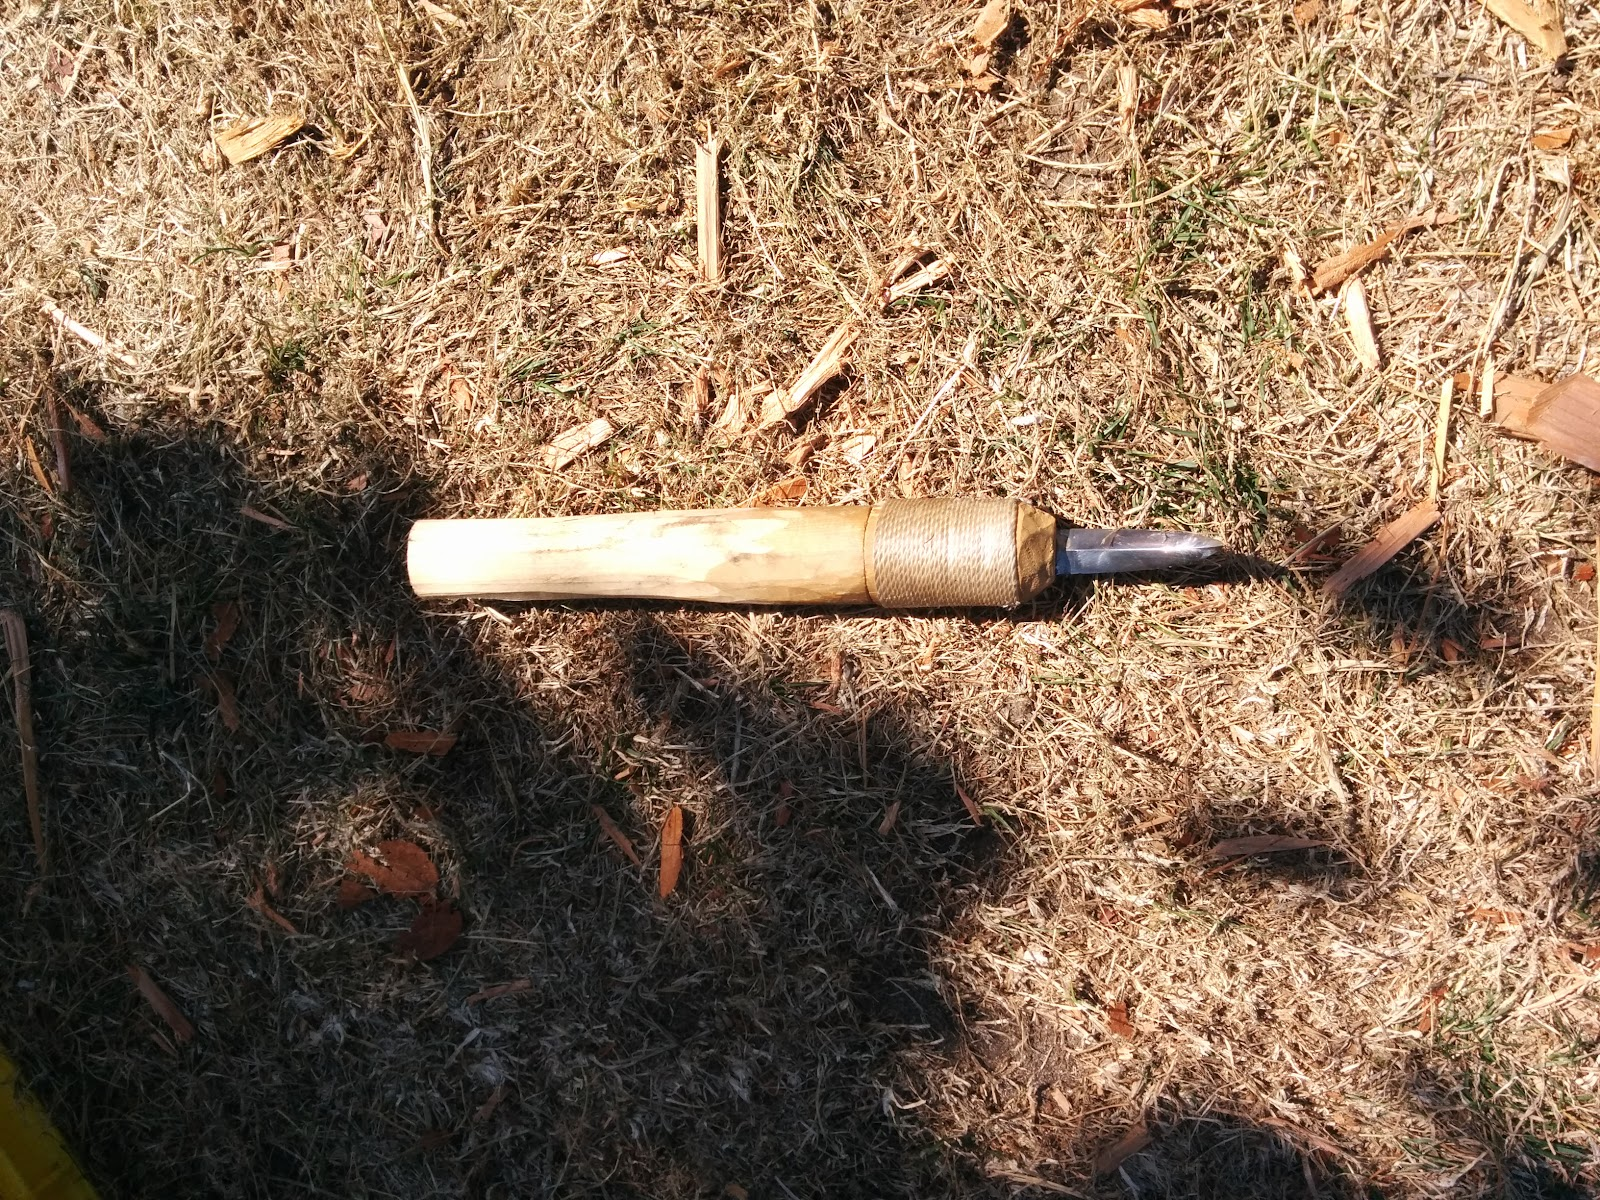 Wood Carving Tool used by Anonymous Recipient of Notebook at Oppenheimer Park Aug 19th.jpg